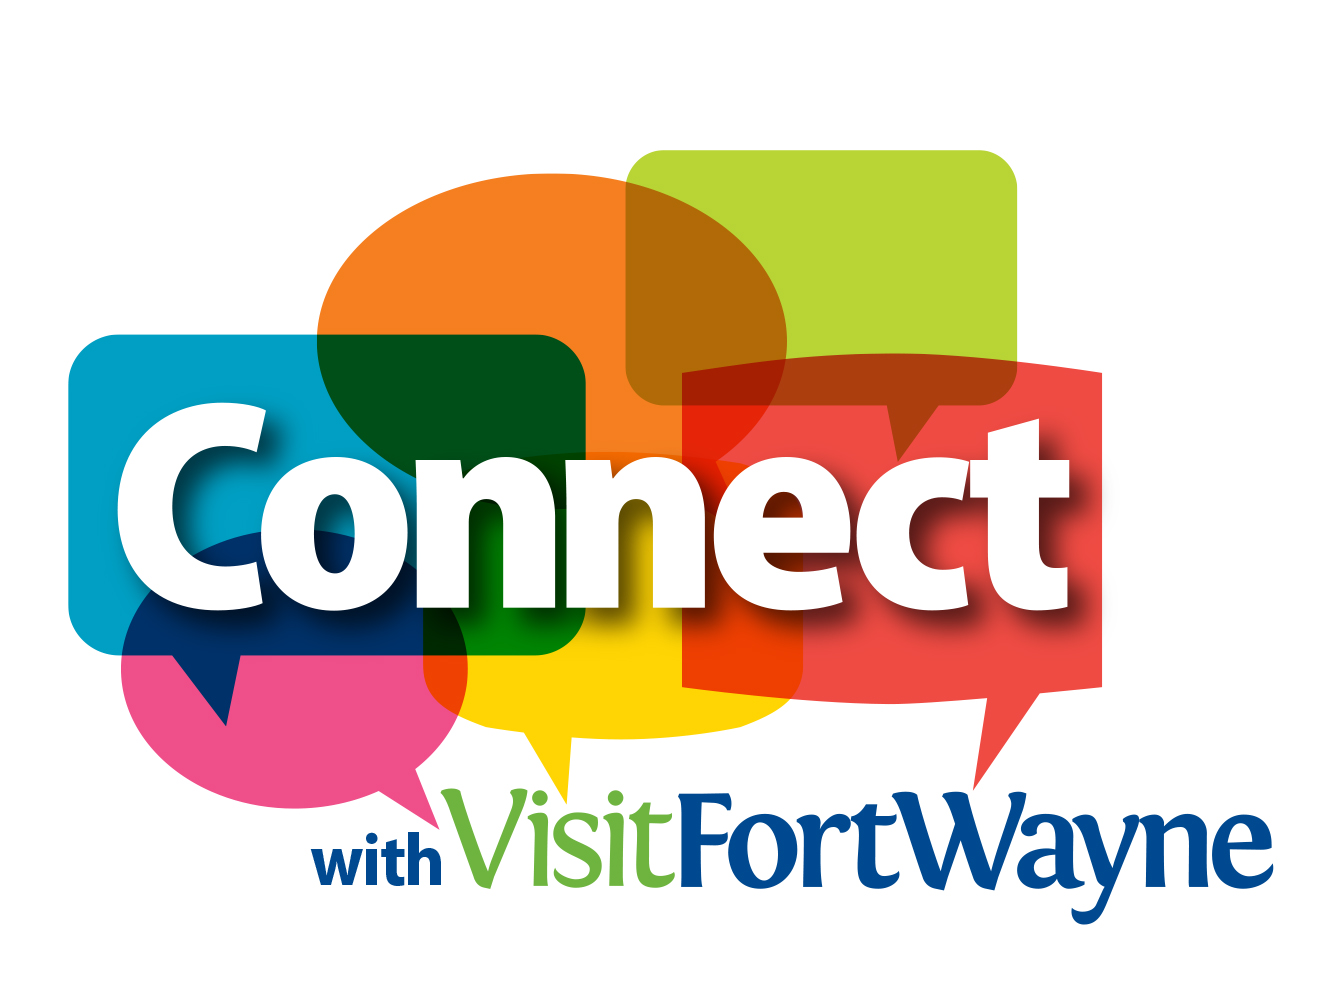 Connect with Visit Fort Wayne